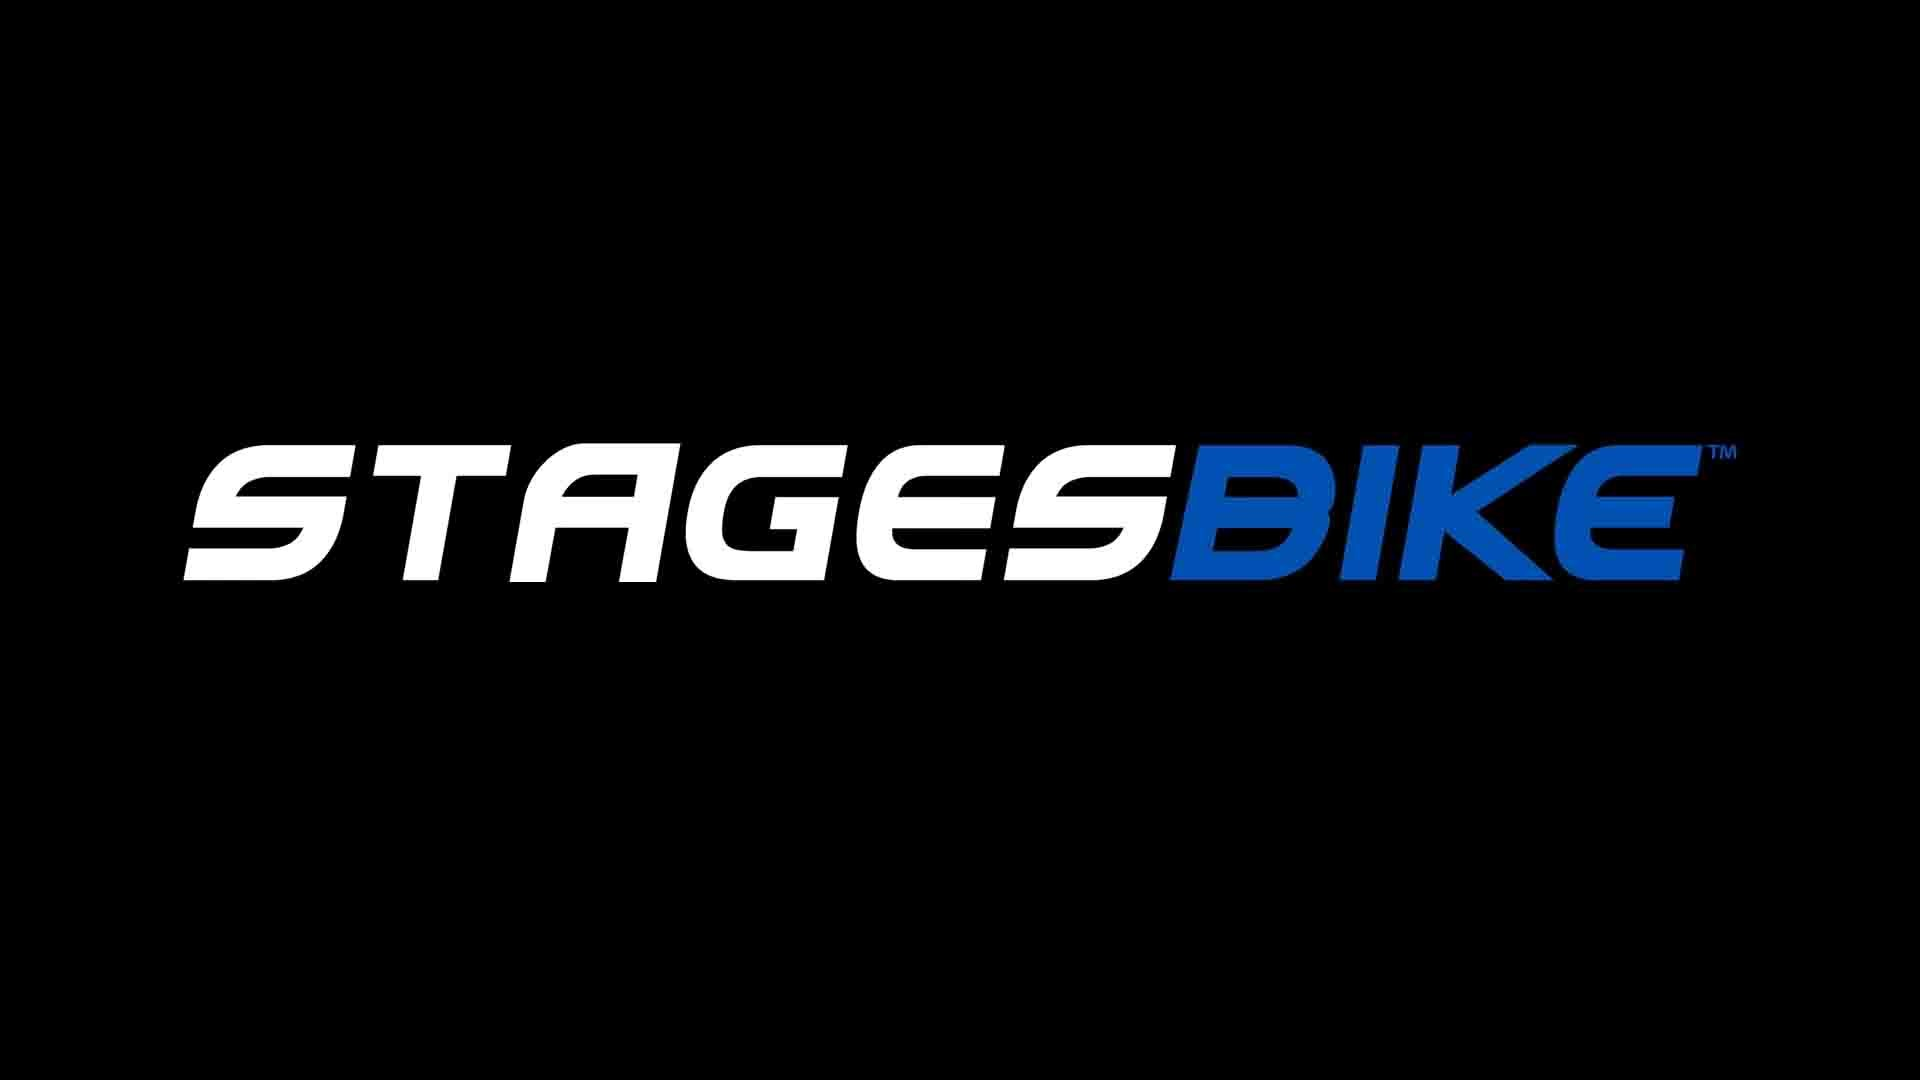 Introducing the StagesBike SB20 Smart Bike - the New Reality of Indoor Cycling